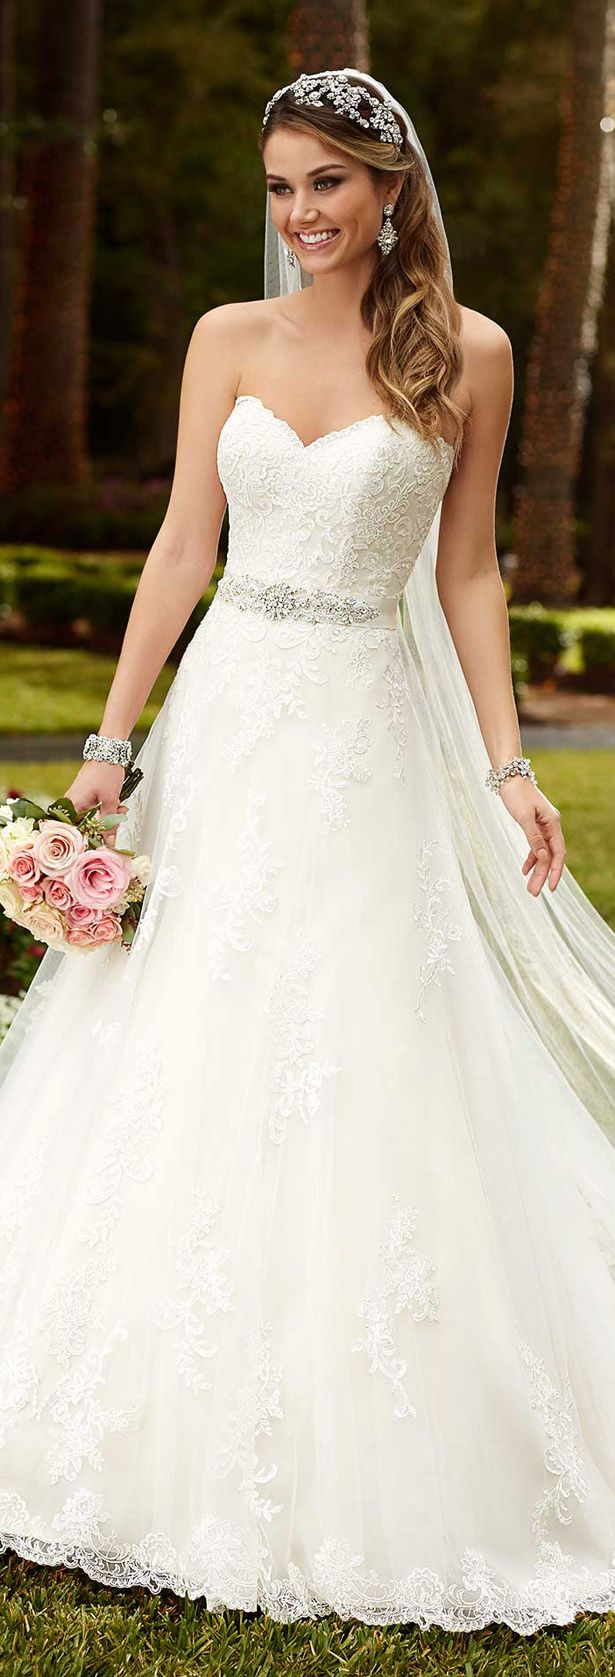 Top 25+ best 2015 wedding dresses ideas on Pinterest | Spring ...